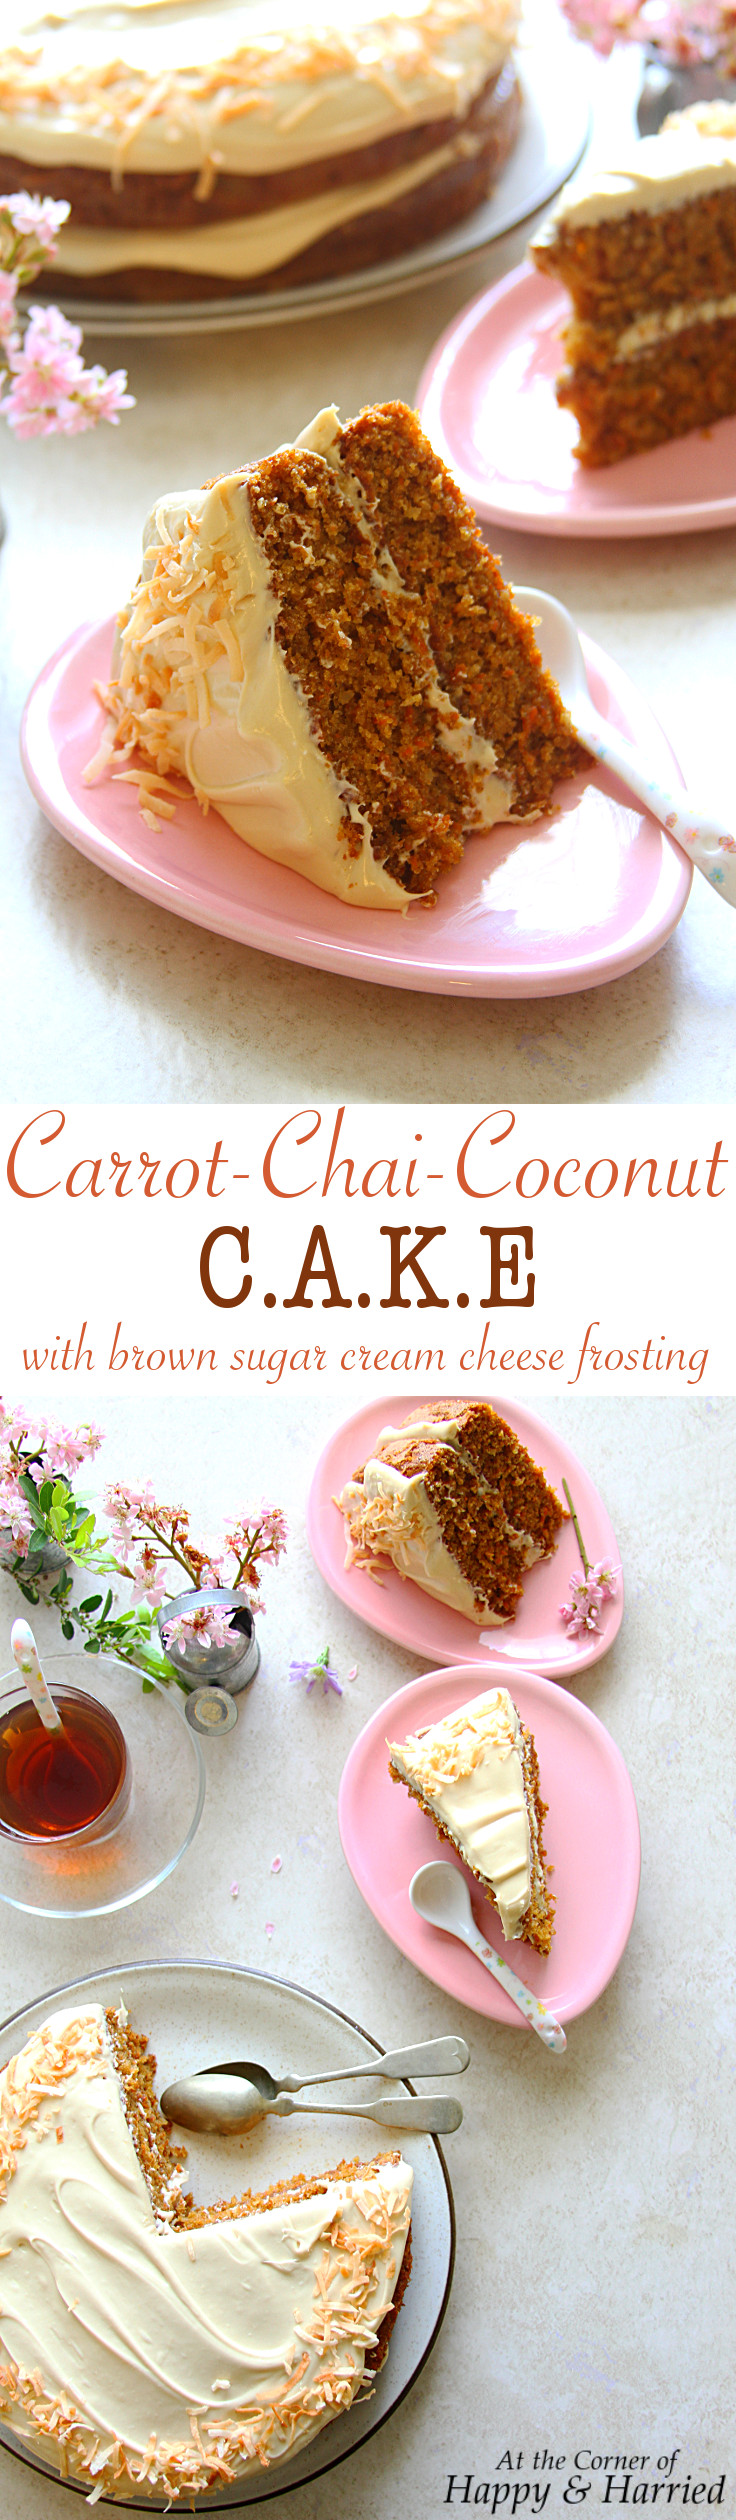 carrot chai coconut cake with brown sugar cream cheese frosting